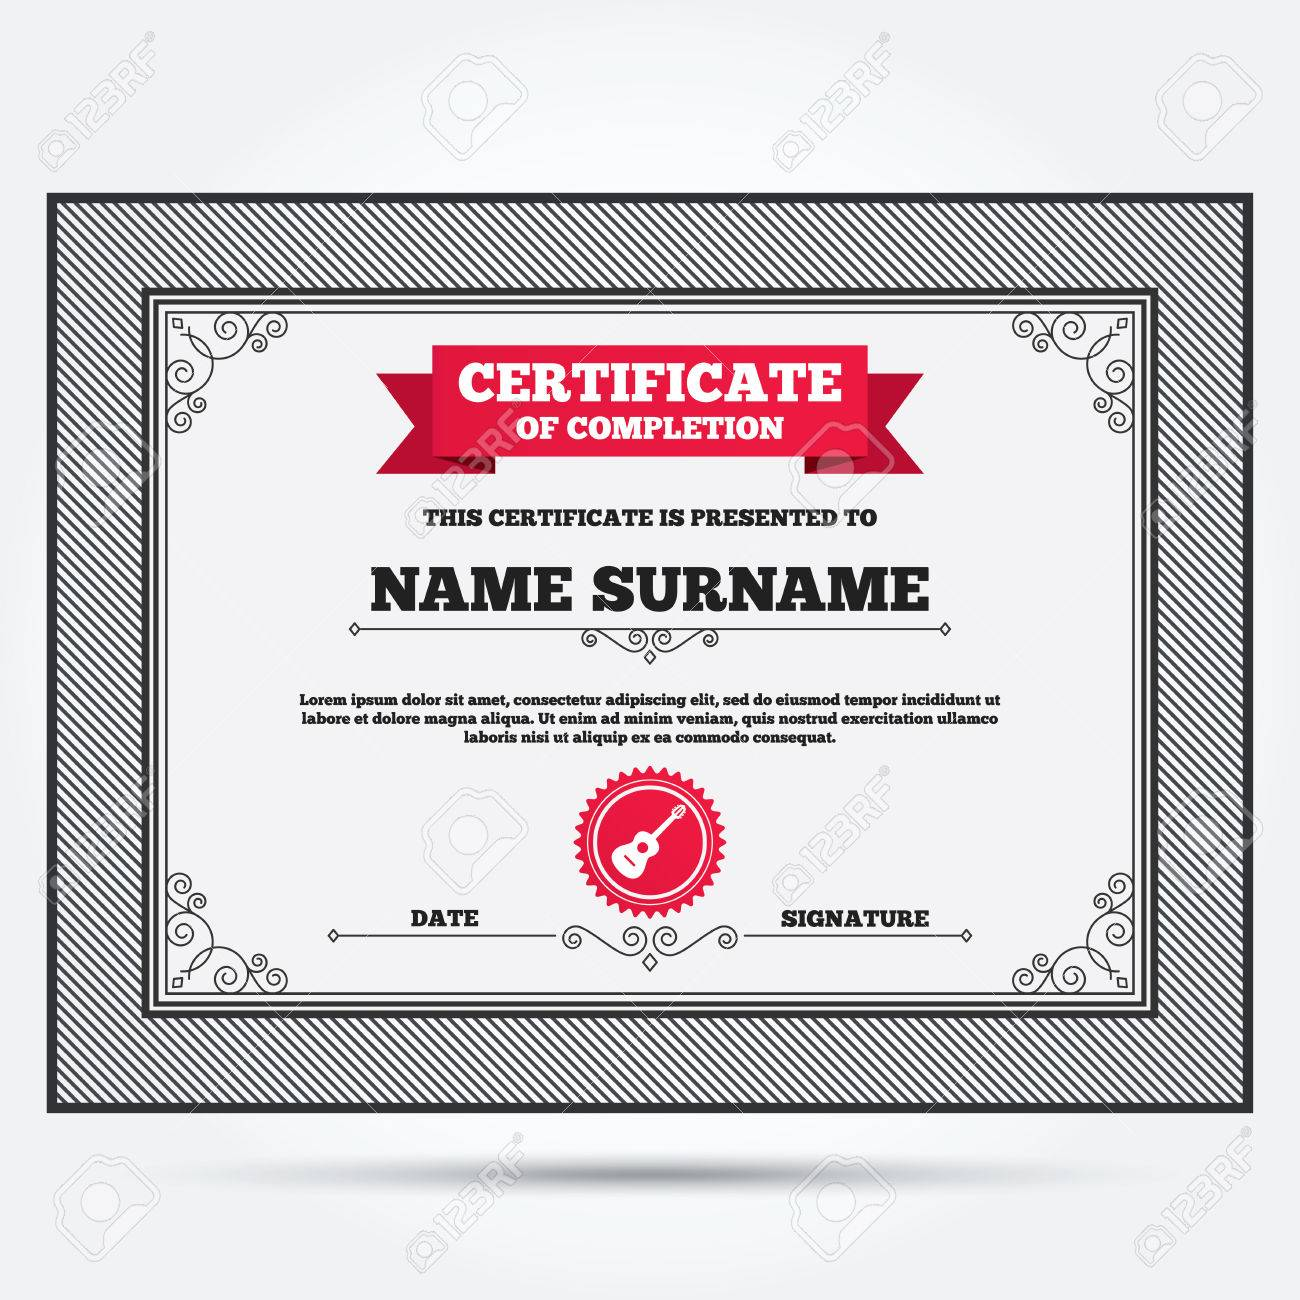 Download free certificate templates free accounting ledger example music certificate template free download choice image 41886660 certificate of completion acoustic guitar sign icon music xflitez Gallery